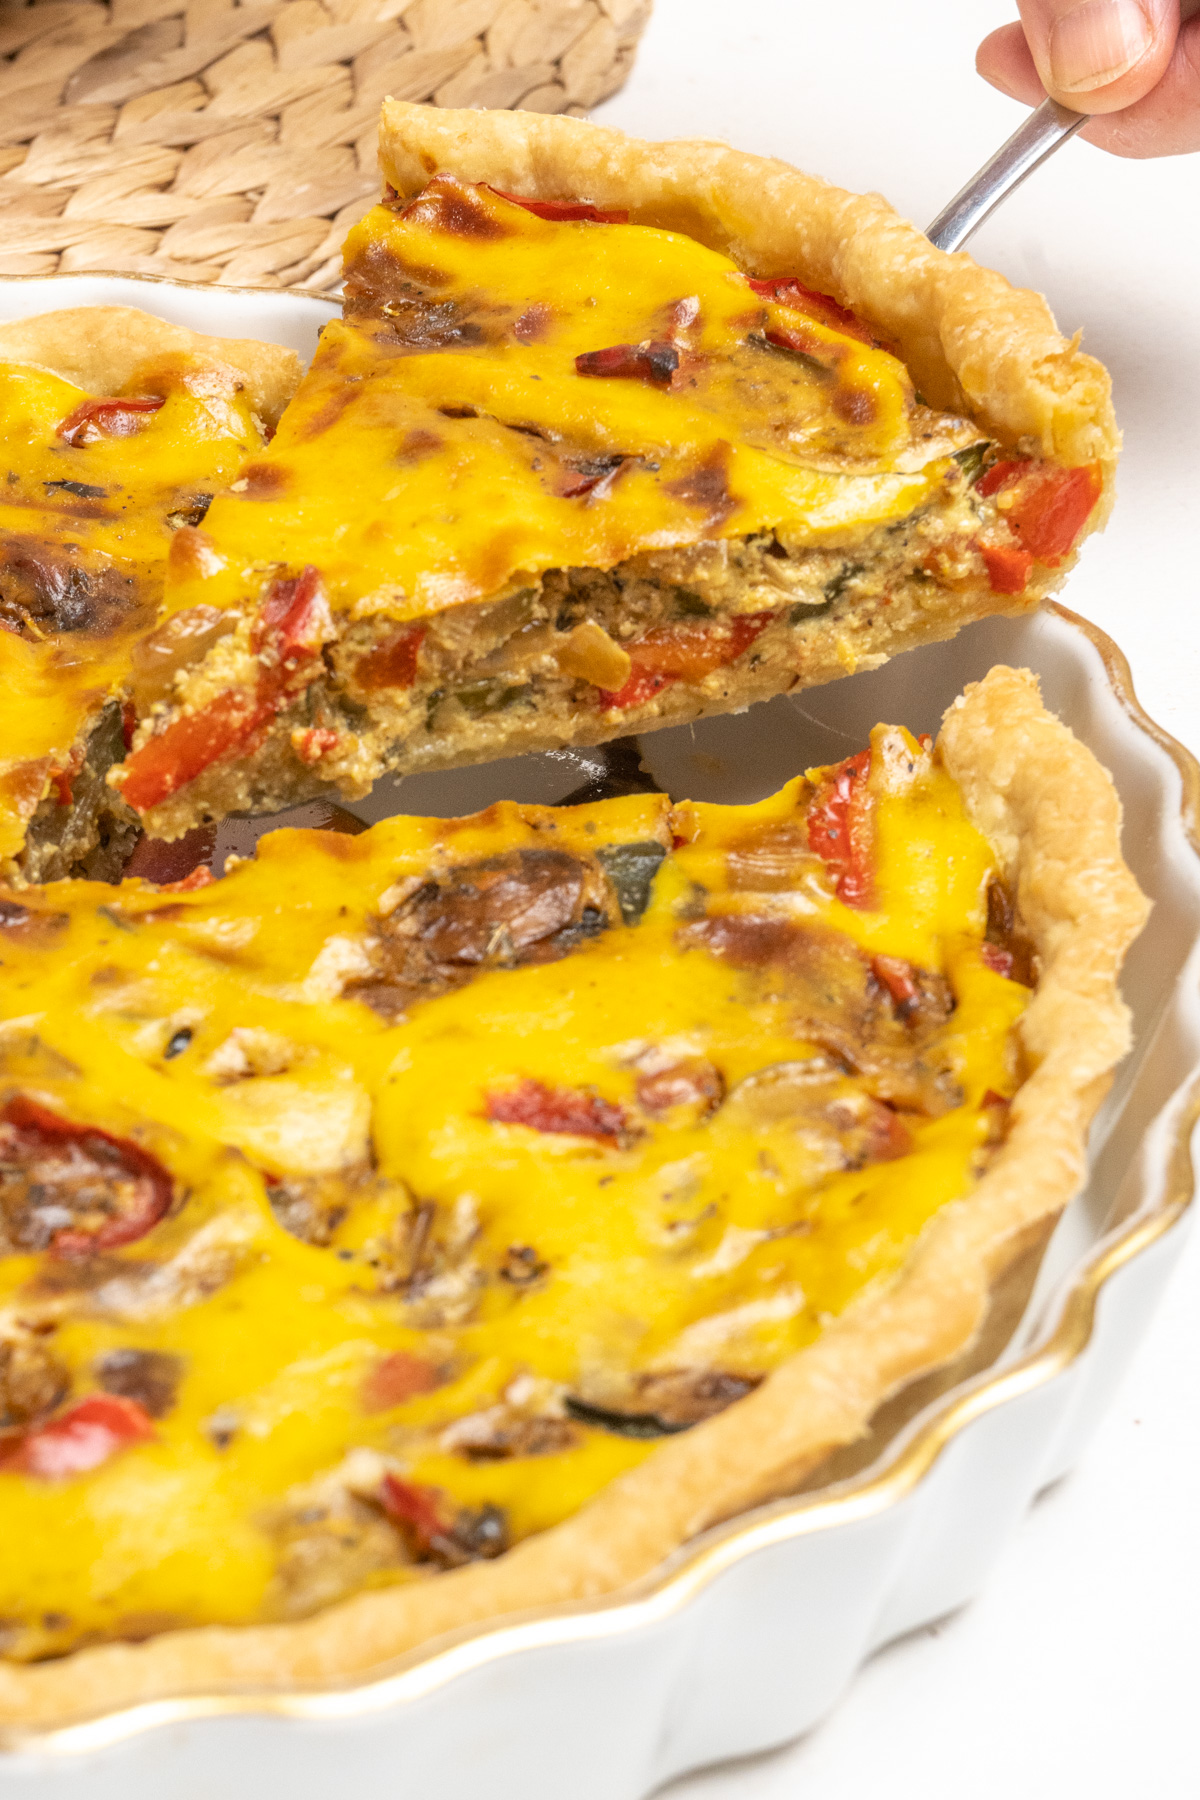 A metal slice lifts a piece of quiche.